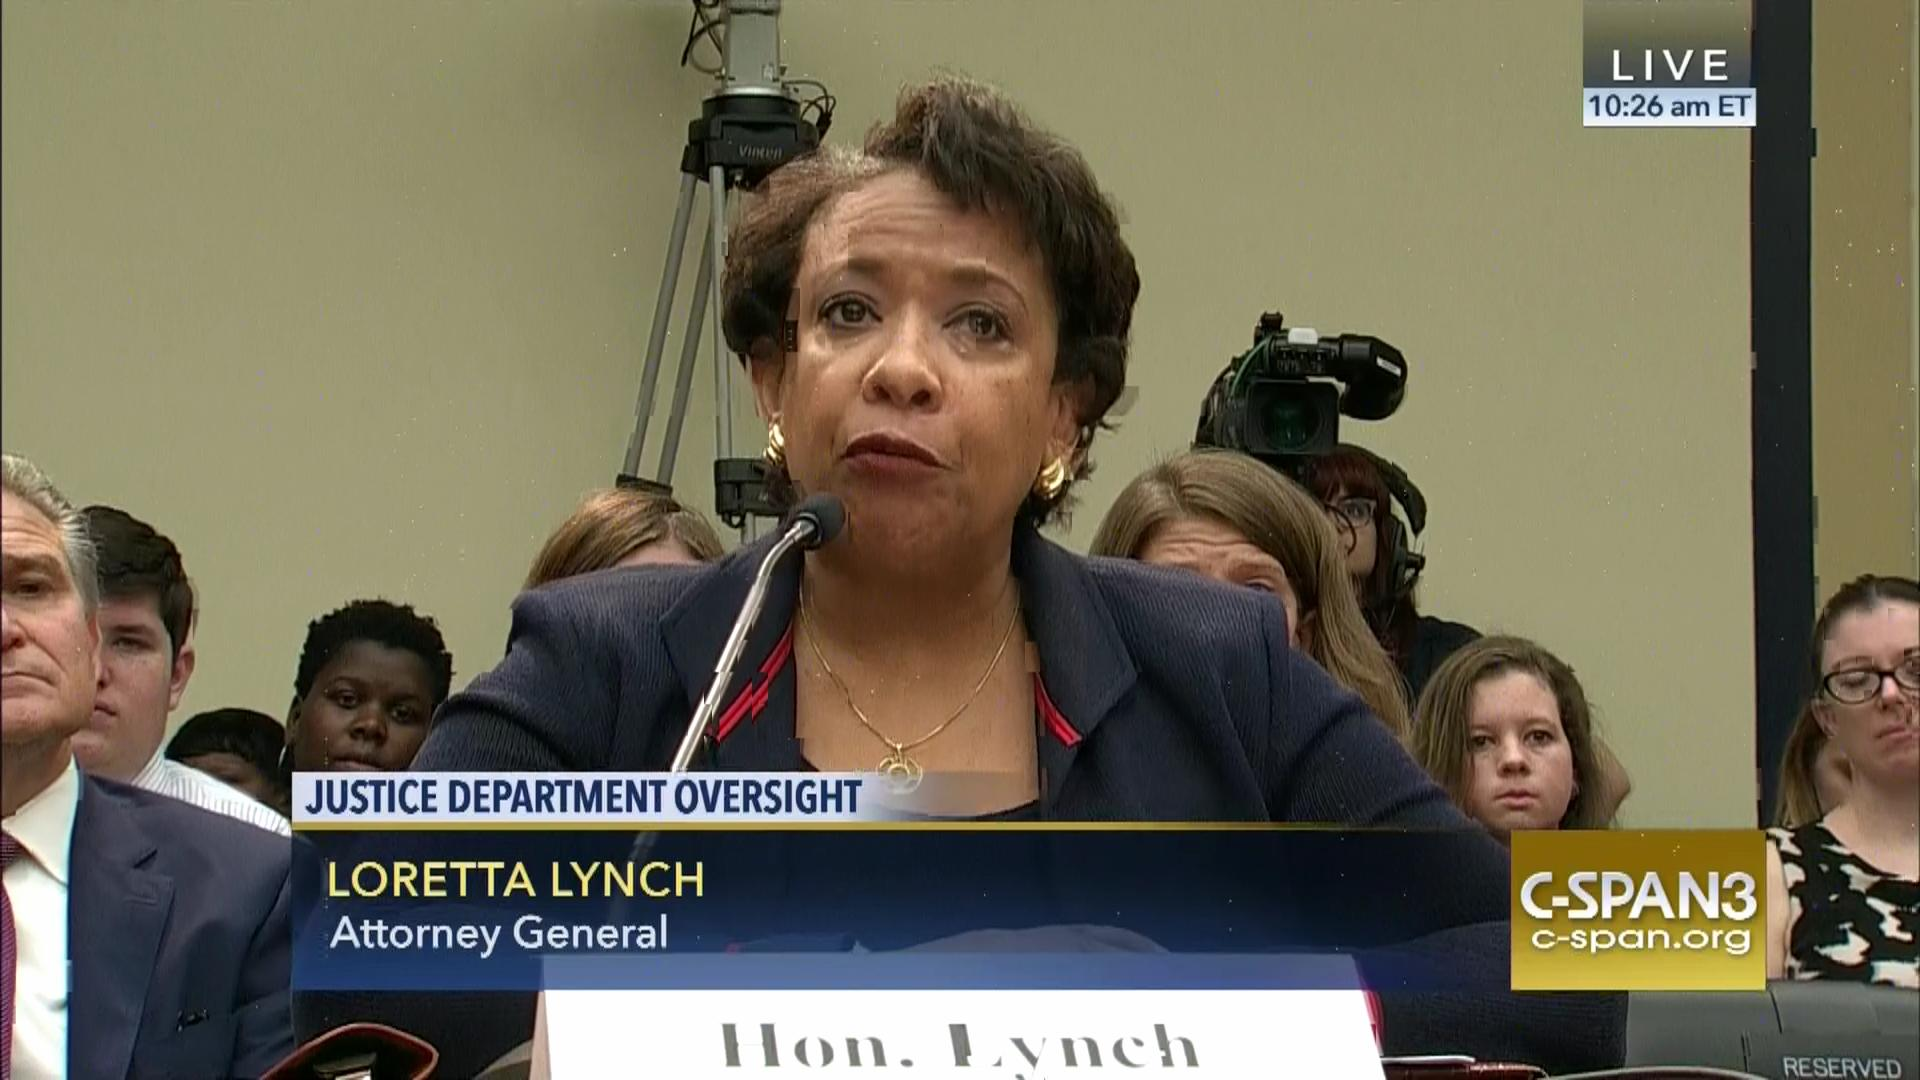 attorney general loretta lynch testifies capitol hill jul 12 2016 c spanorg. Resume Example. Resume CV Cover Letter